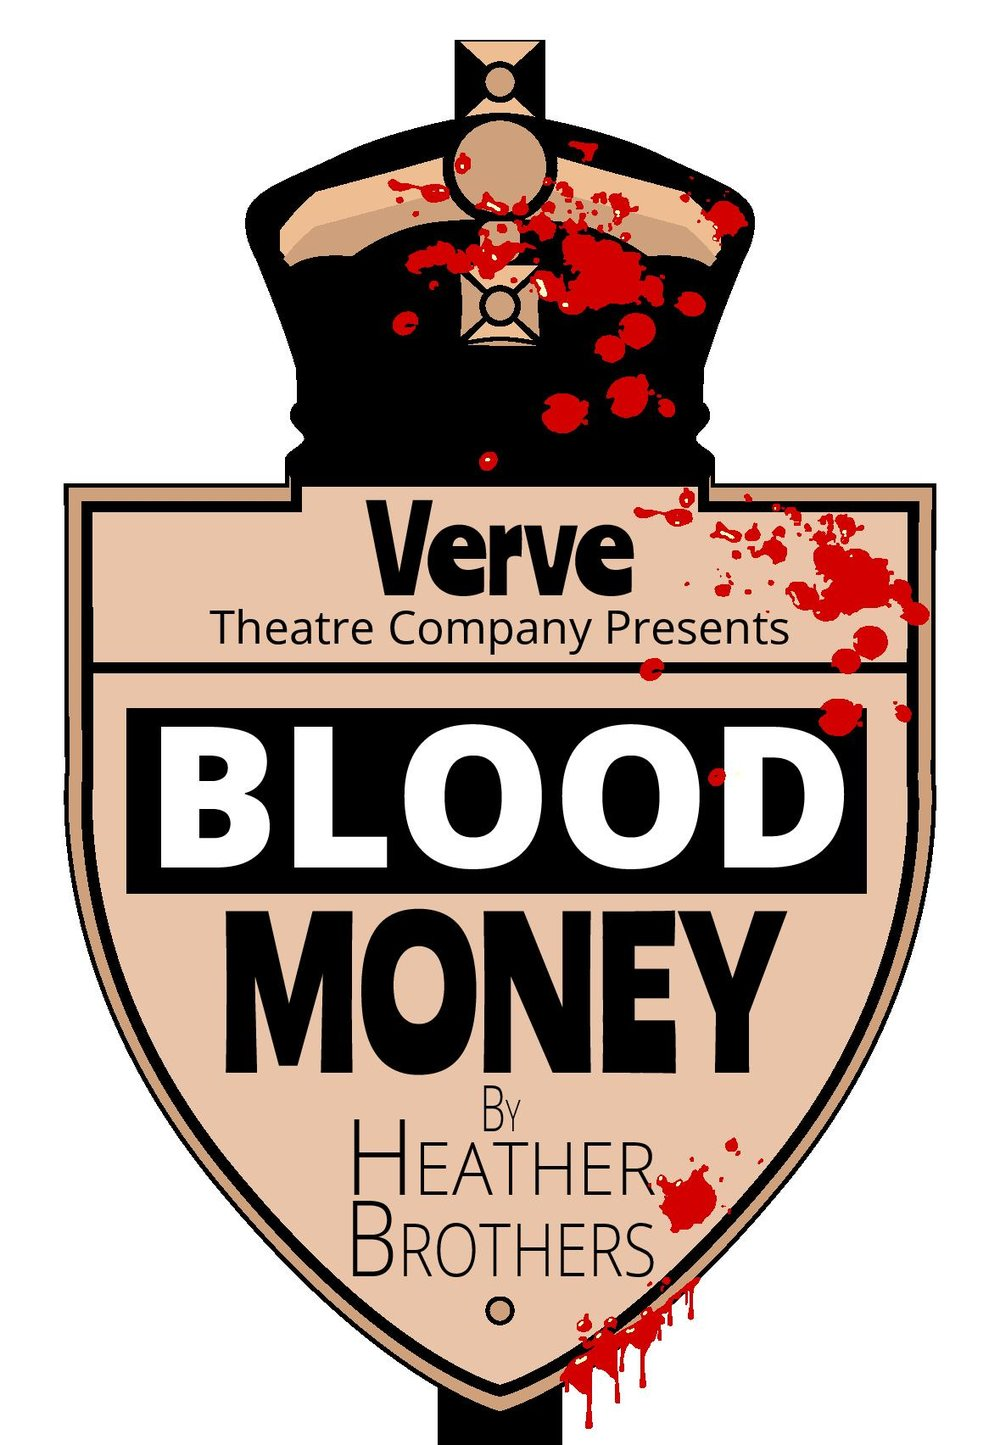 blood_money_logo.jpg